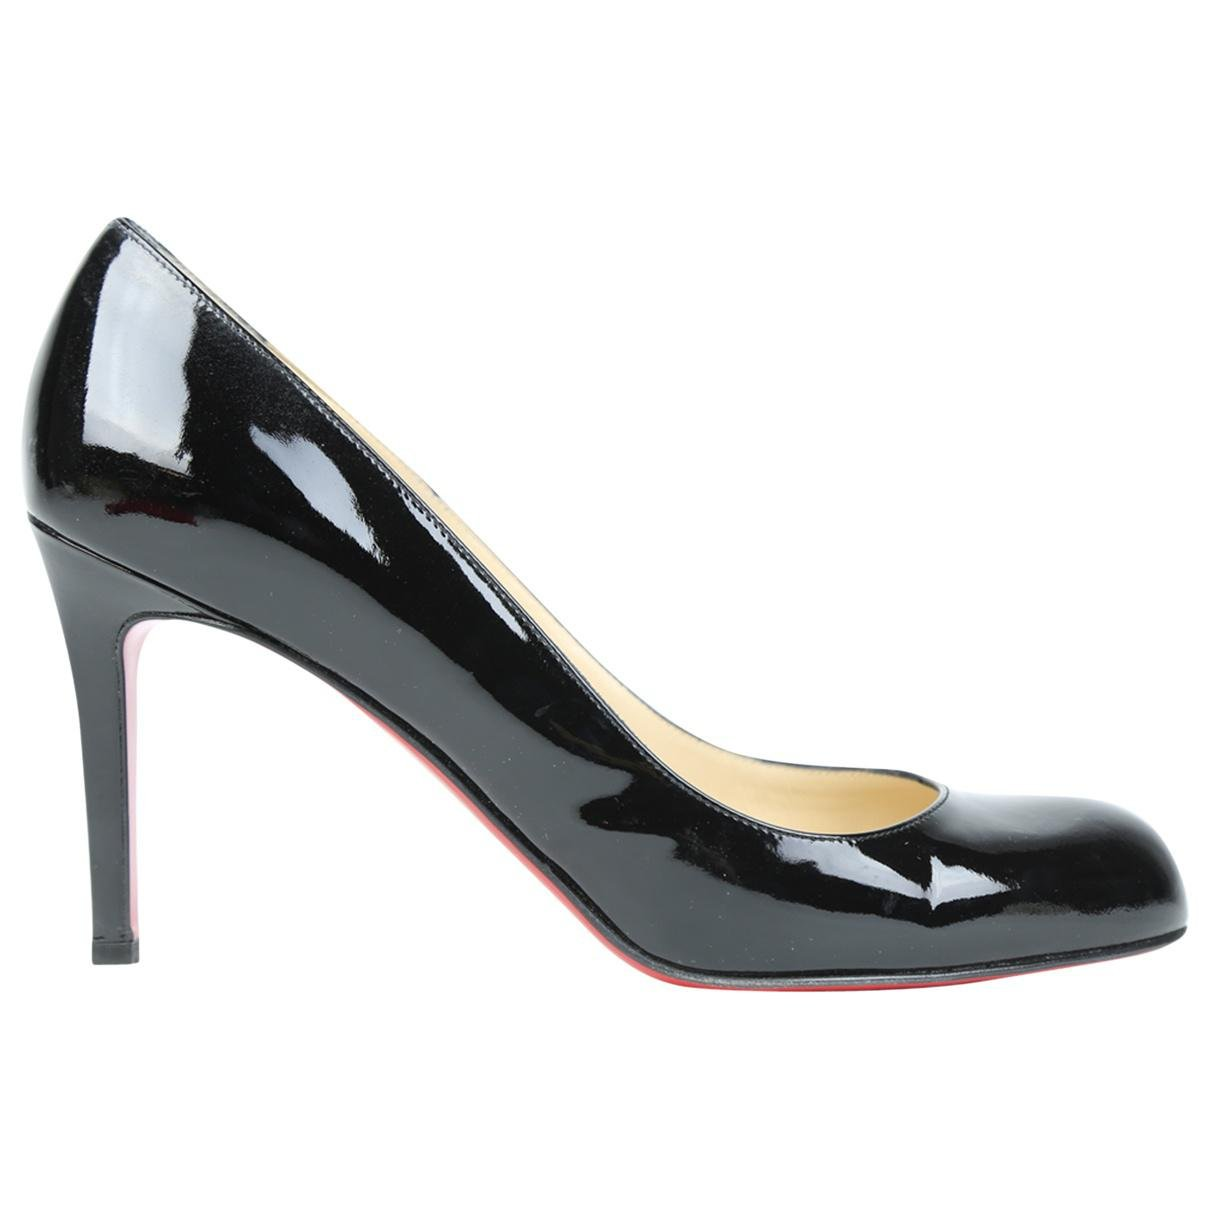 3df46d57ad Lyst - Christian Louboutin Pre-owned Simple Pump Patent Leather ...